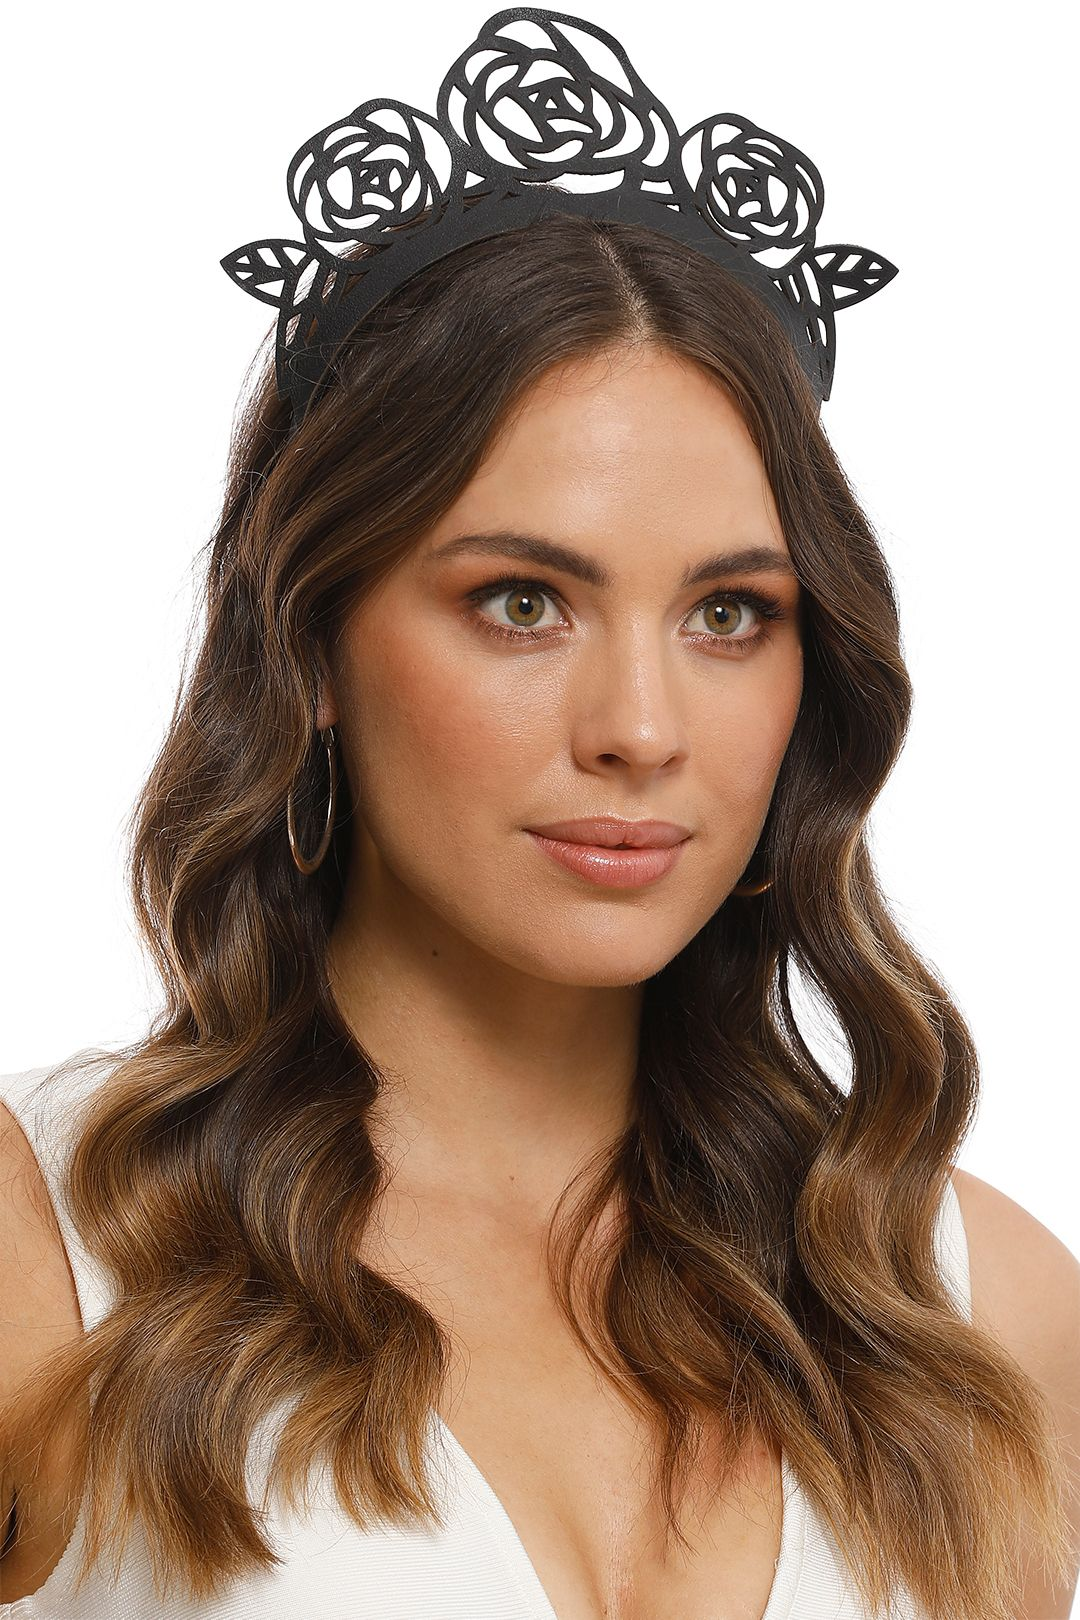 Morgan and Taylor - Leather Laser Cut Rose Crown - Black